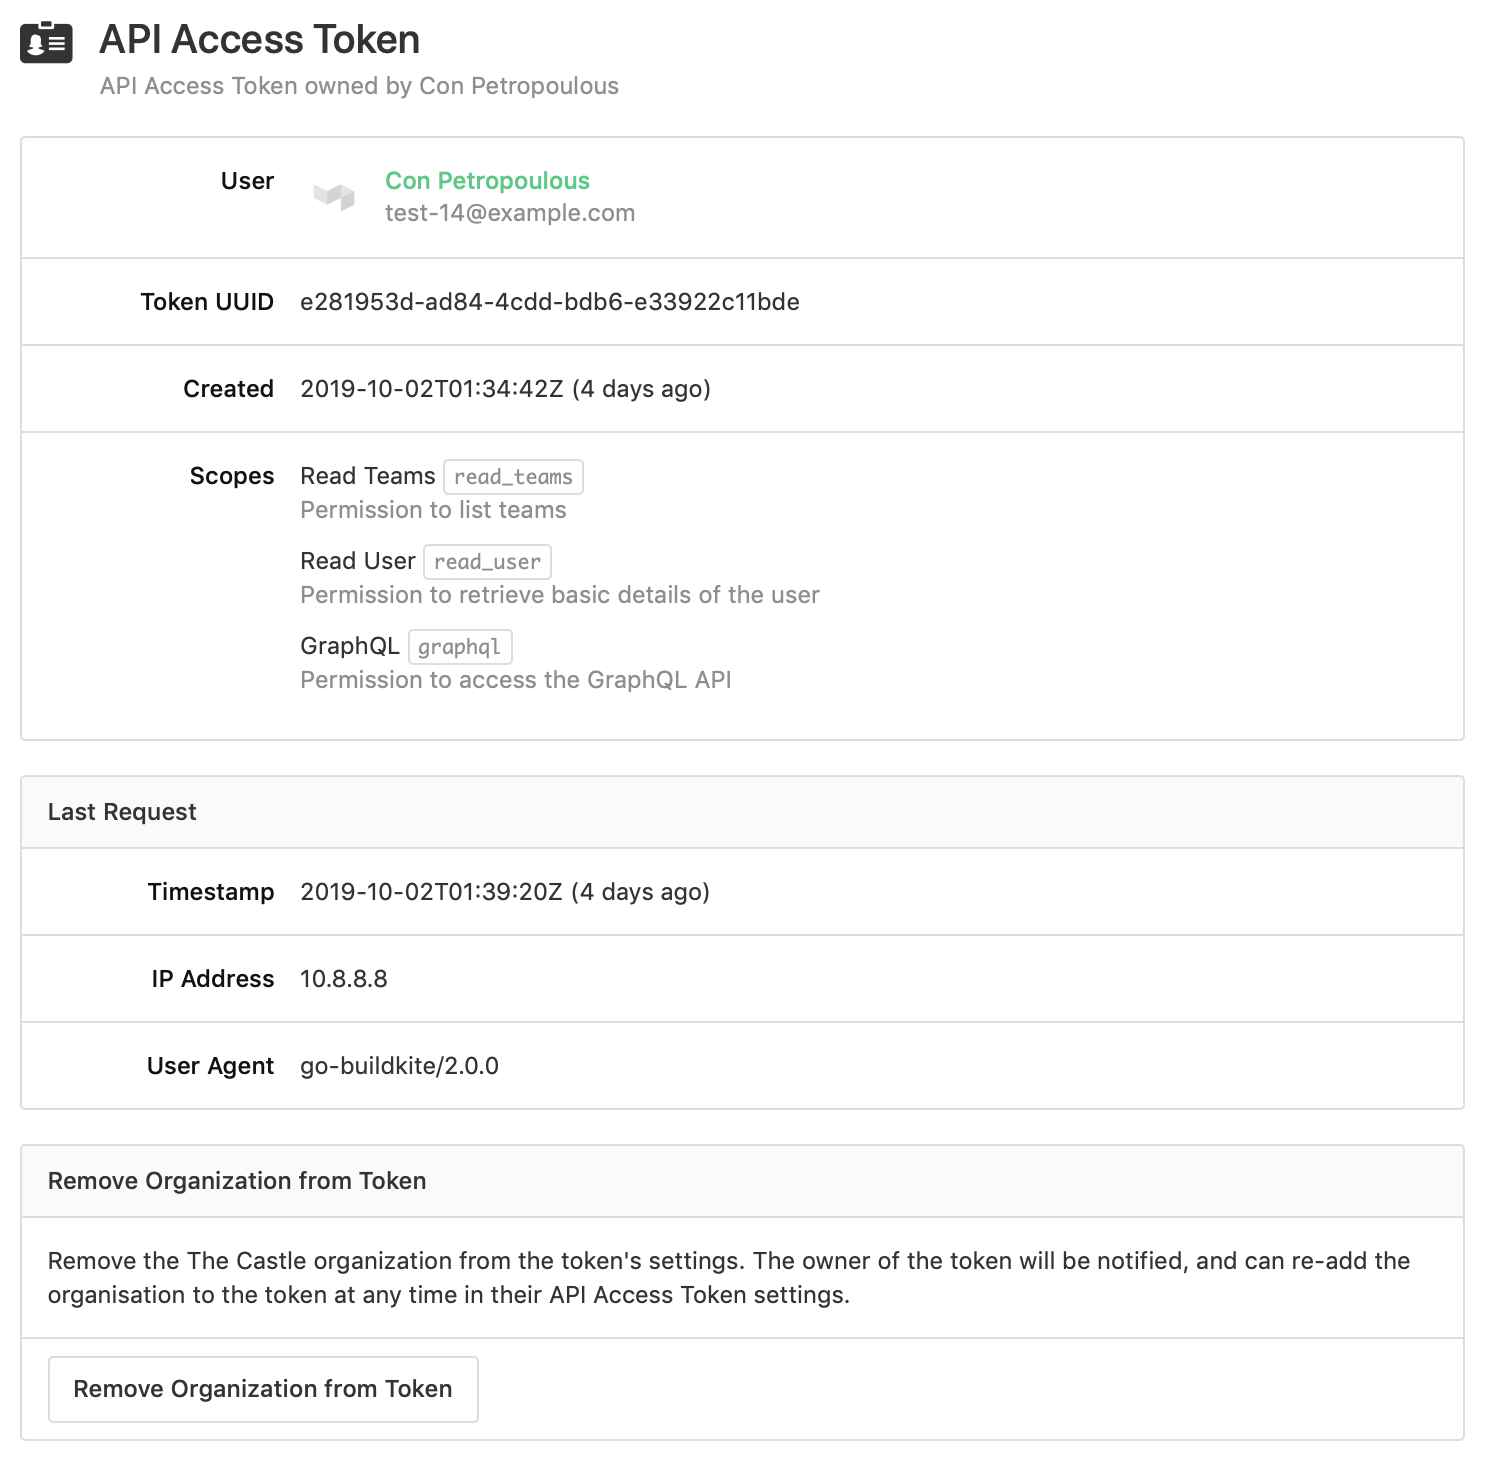 Screenshot of the API access token page with the Revoke Access button at the bottom of the screen